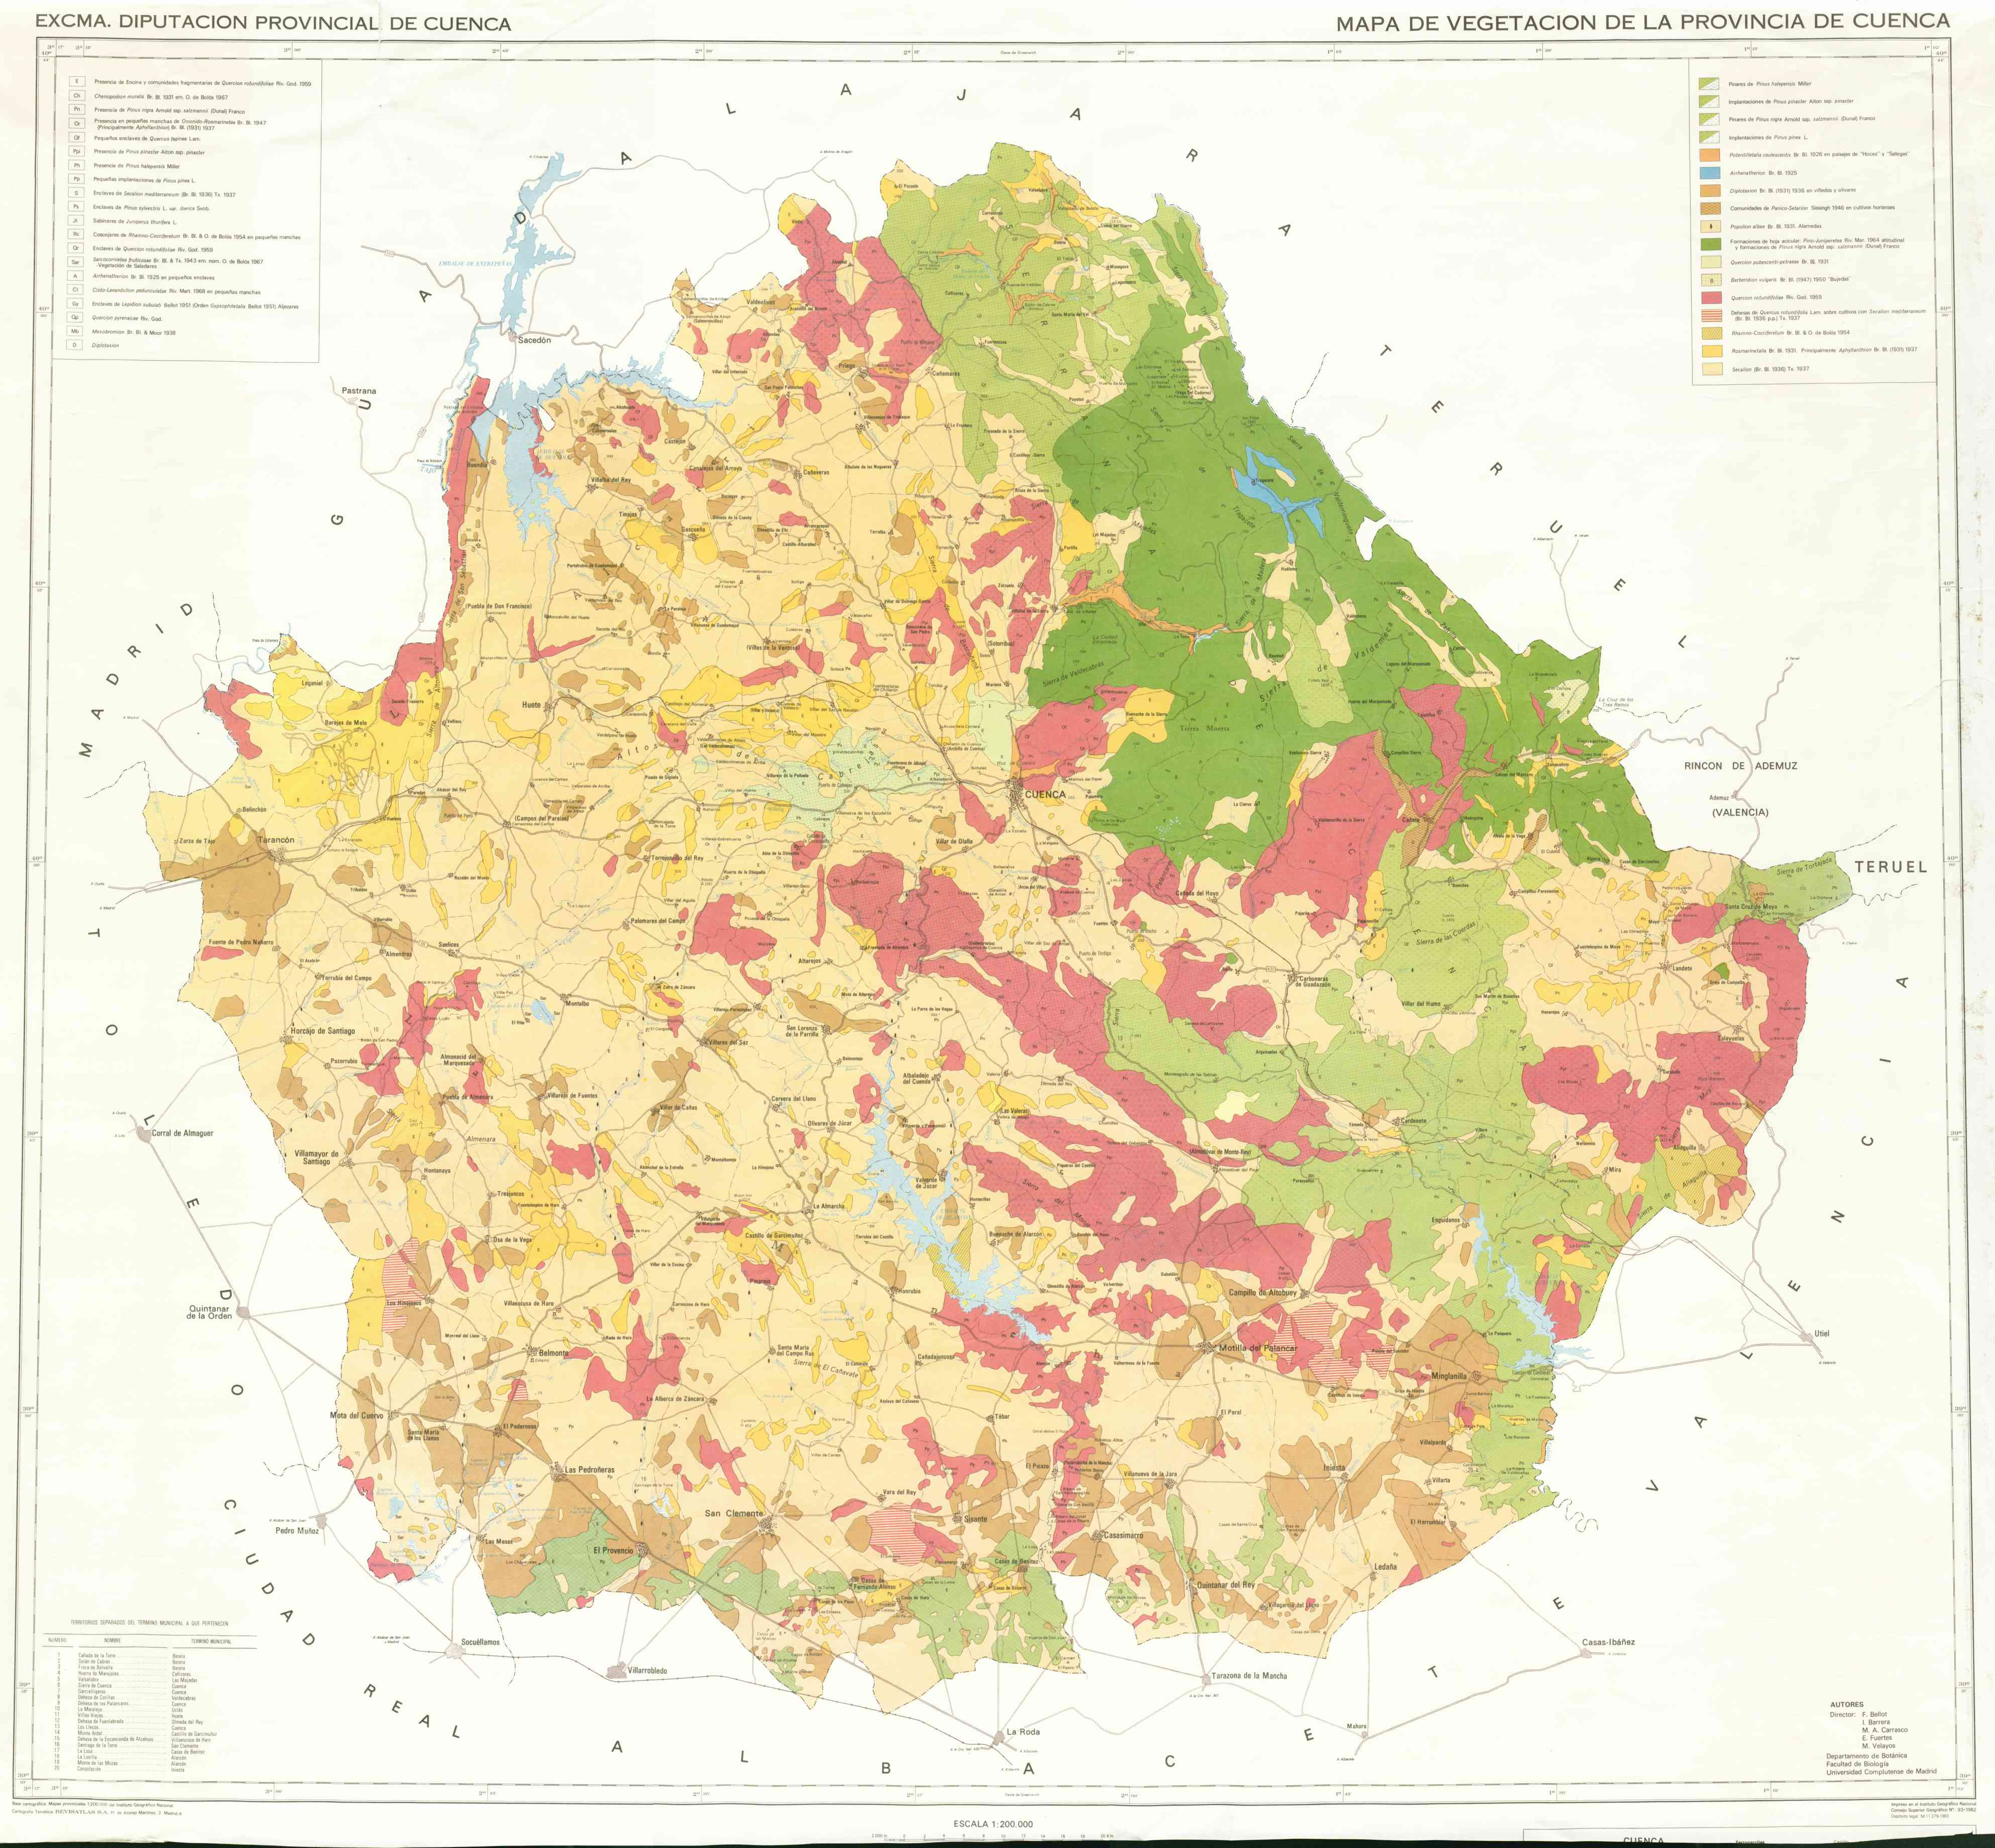 Vegetation of the Province of Cuenca 1982